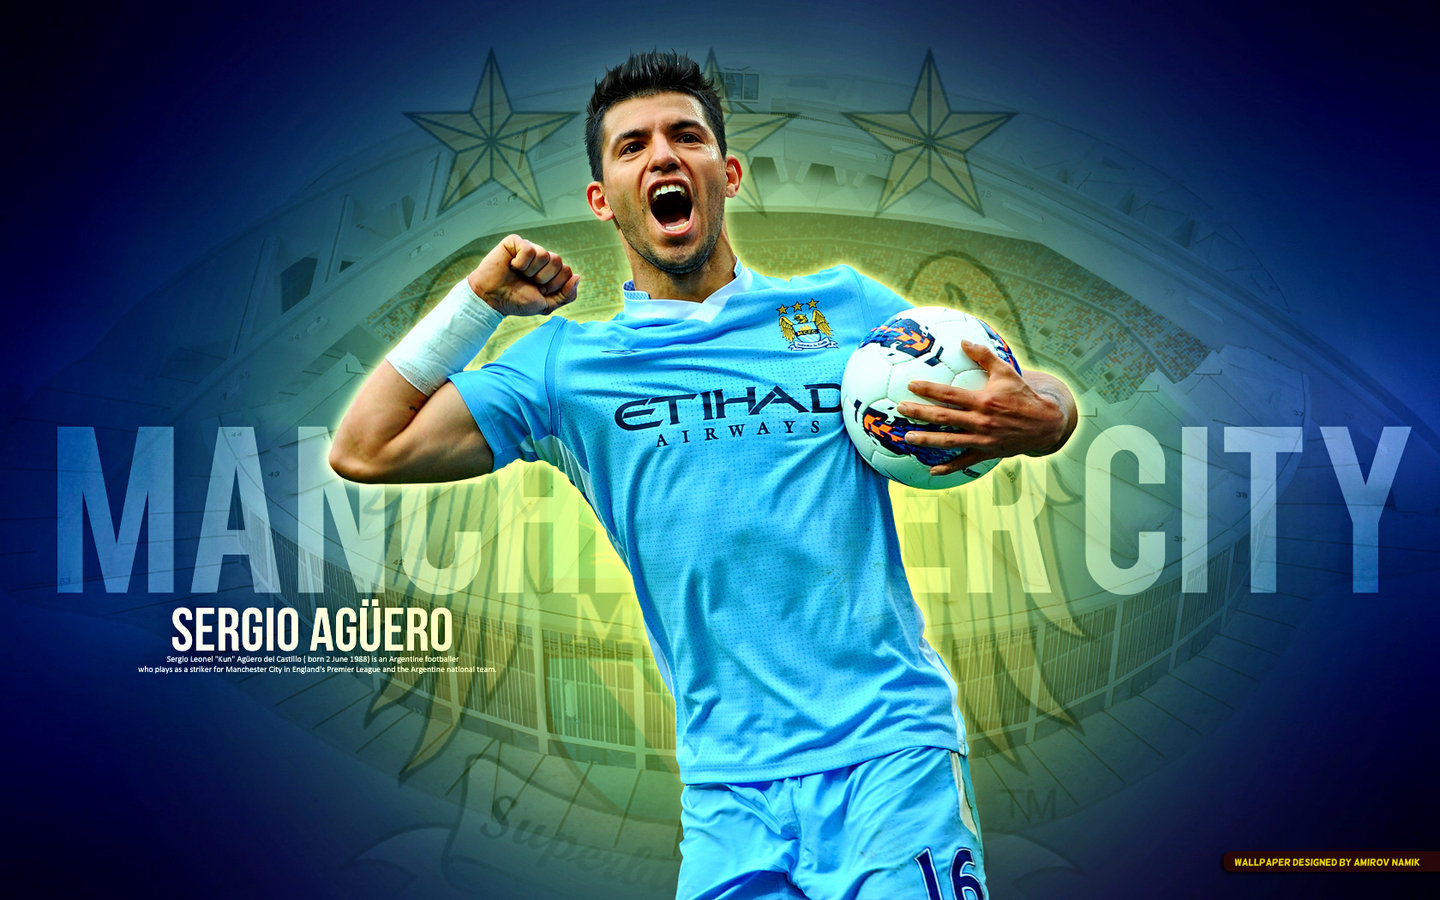 Sergio Aguero 651615 Wallpapers High Quality: Sergio Aguero Wallpapers High Resolution And Quality